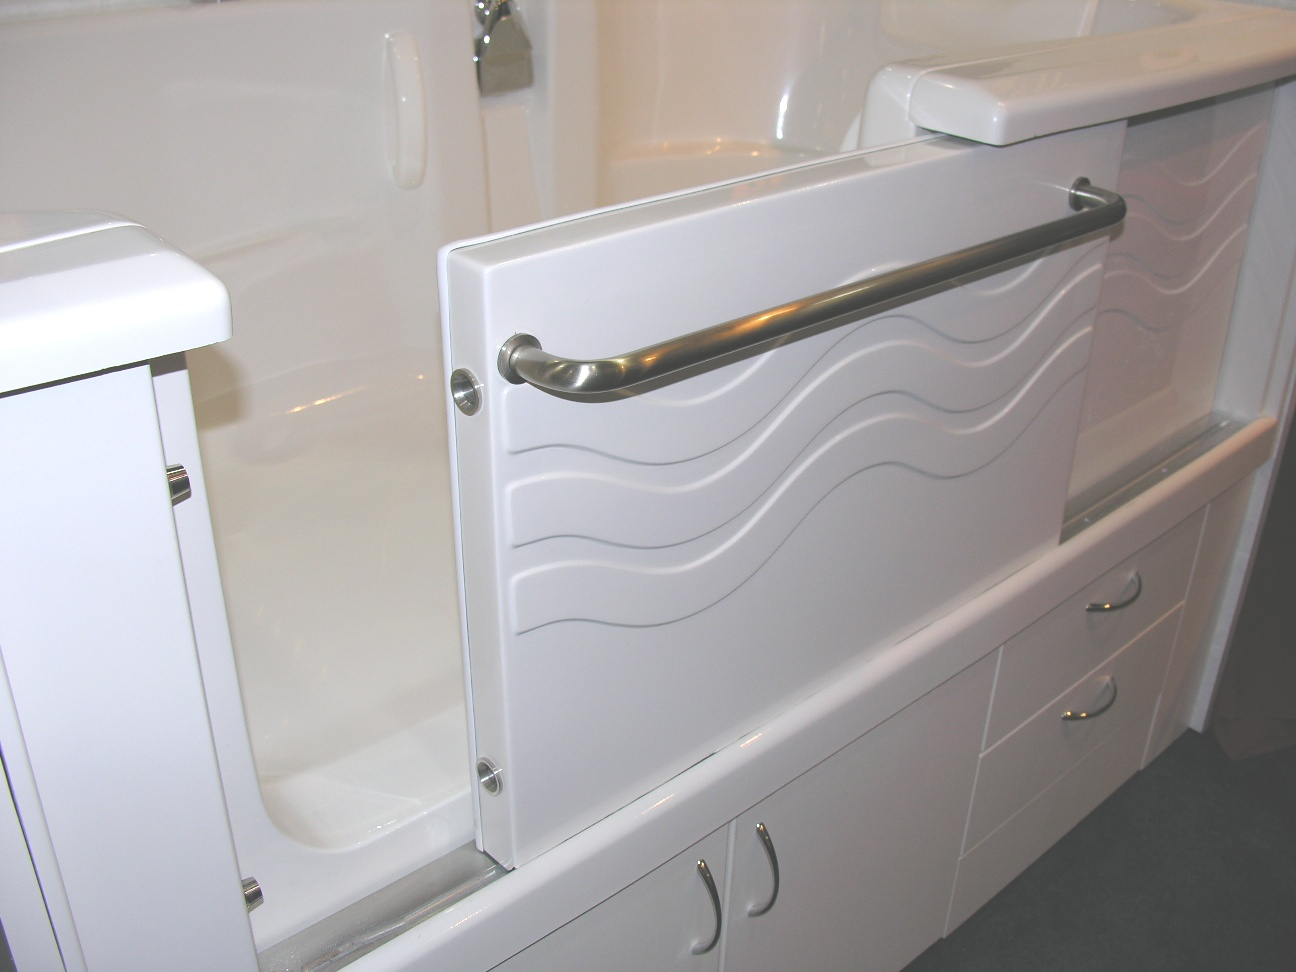 Walk In Bathtub Walk In Tubs Wholesale from ILUSA - The